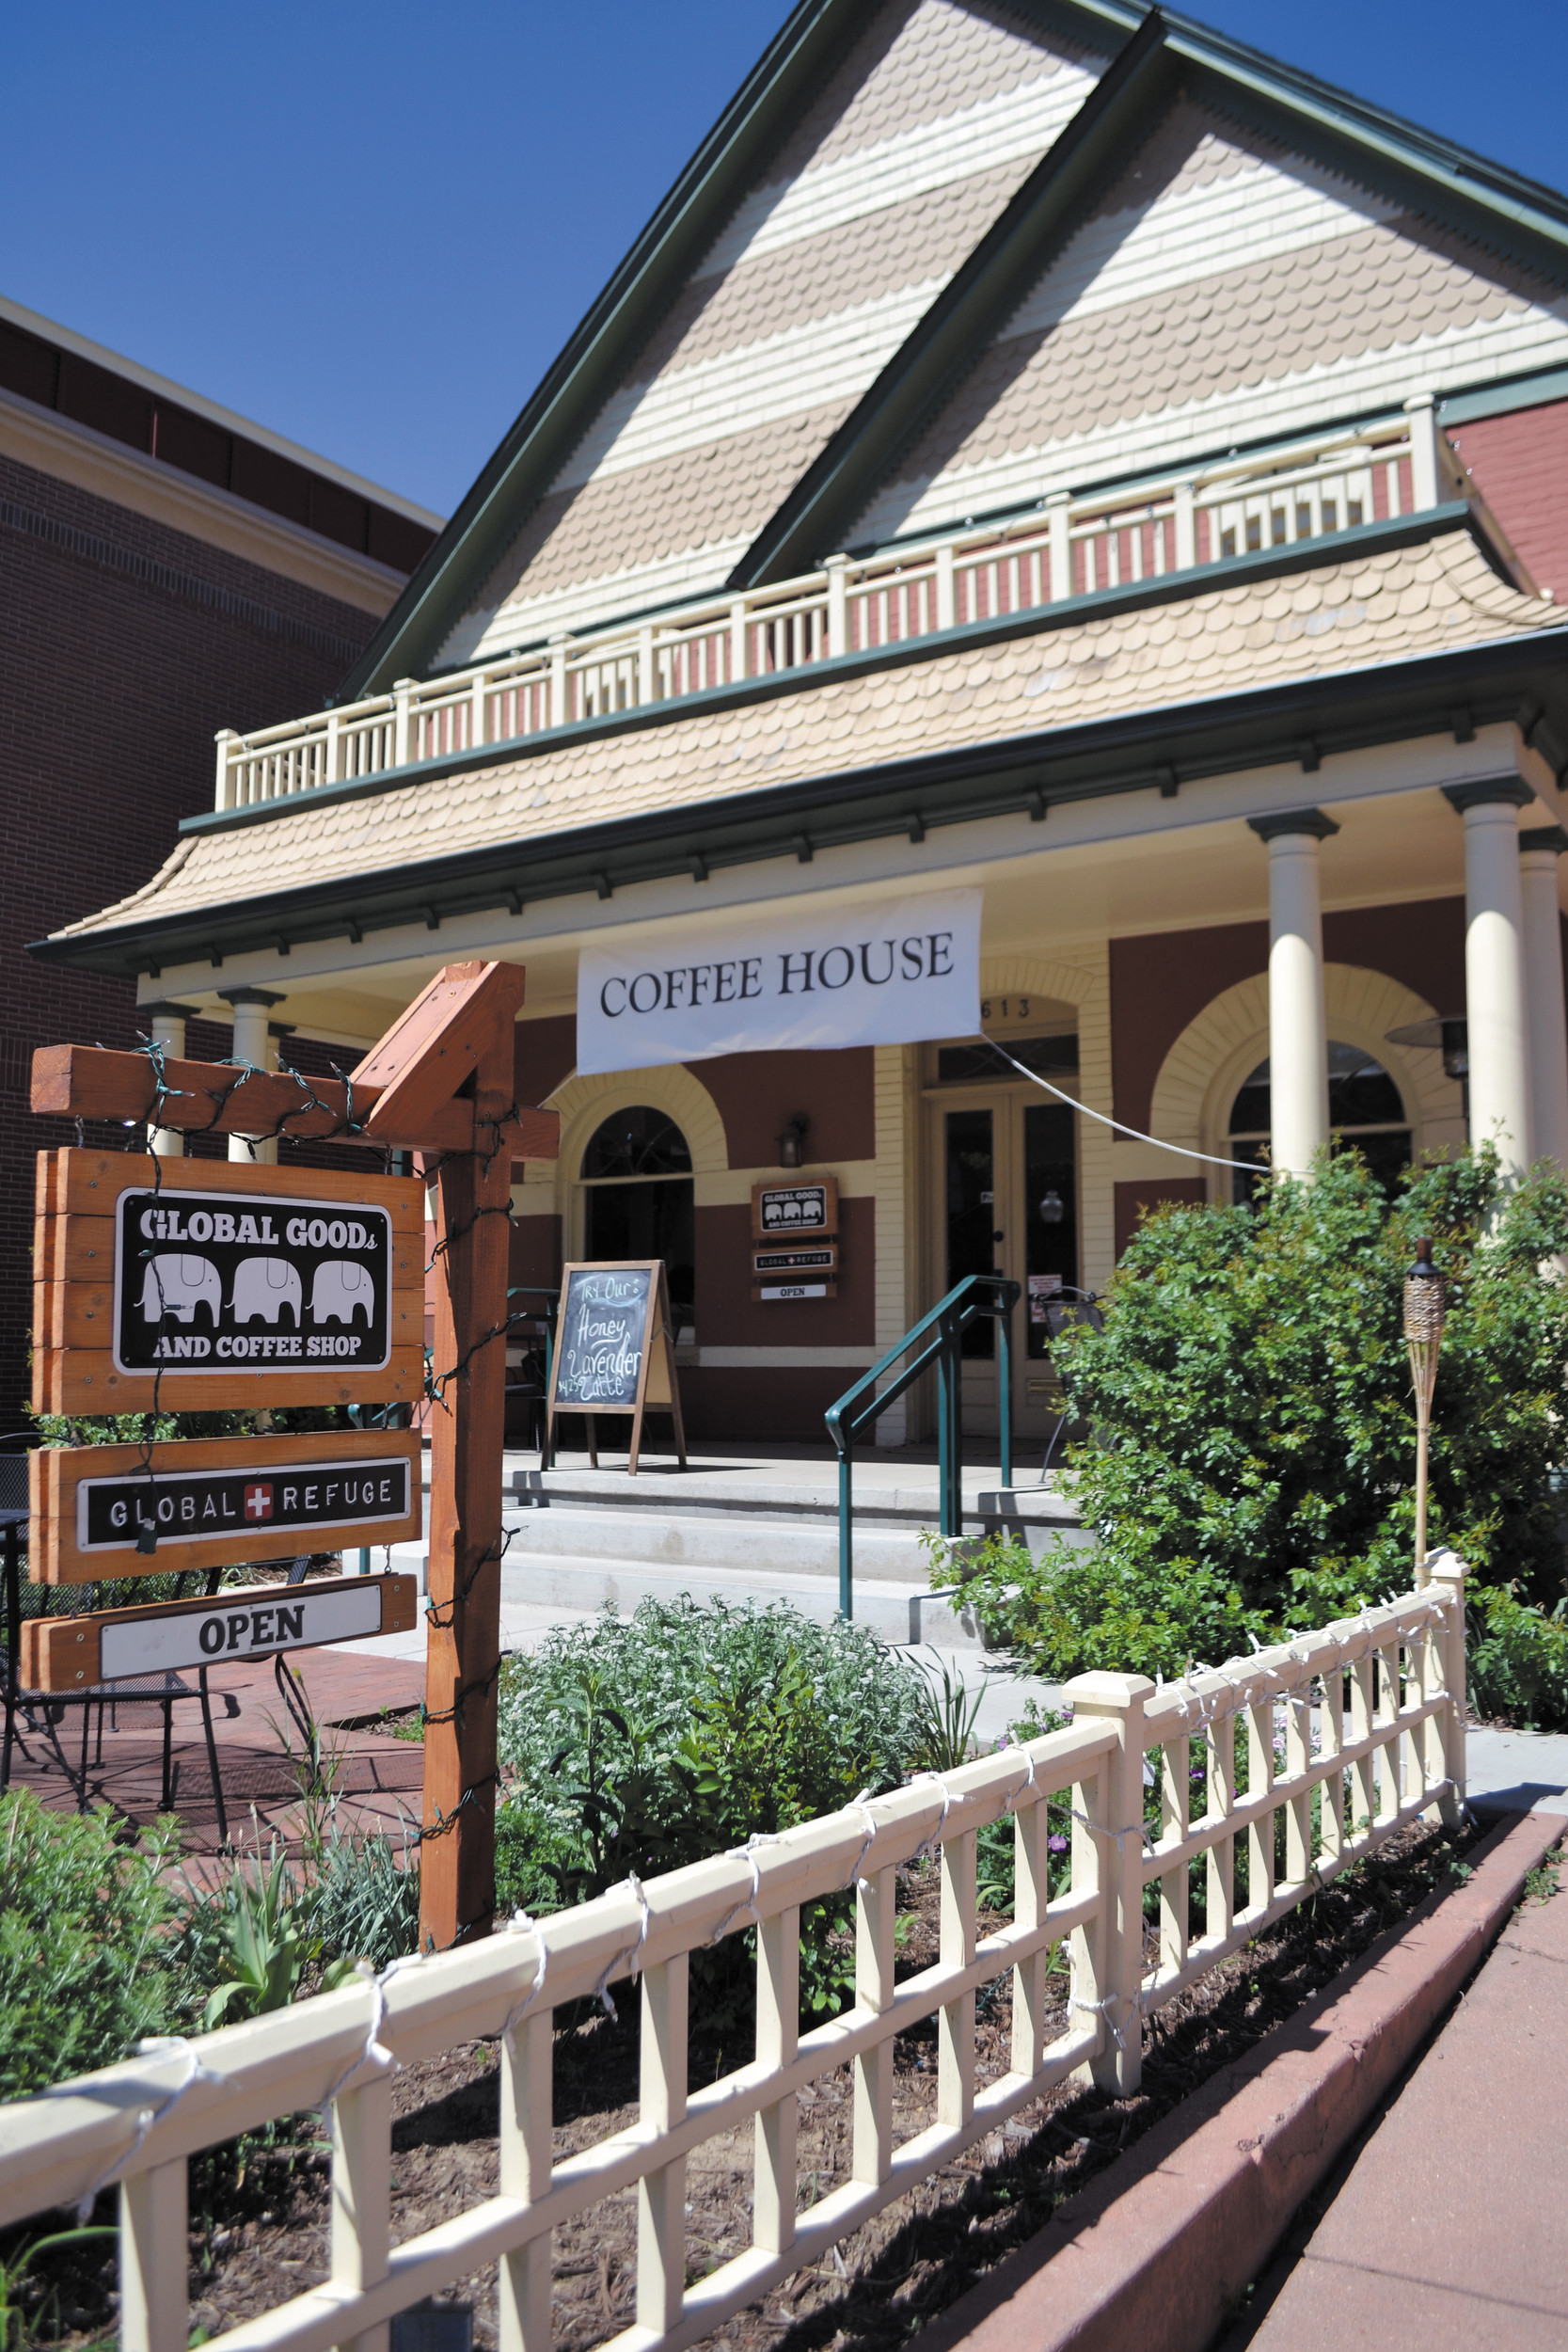 Located in the heart of Olde Town Arvada, in a large yellow house, the coffee house serves more than 100 customers who enjoy Global Goods' distinctive locale and handcrafted drinks.